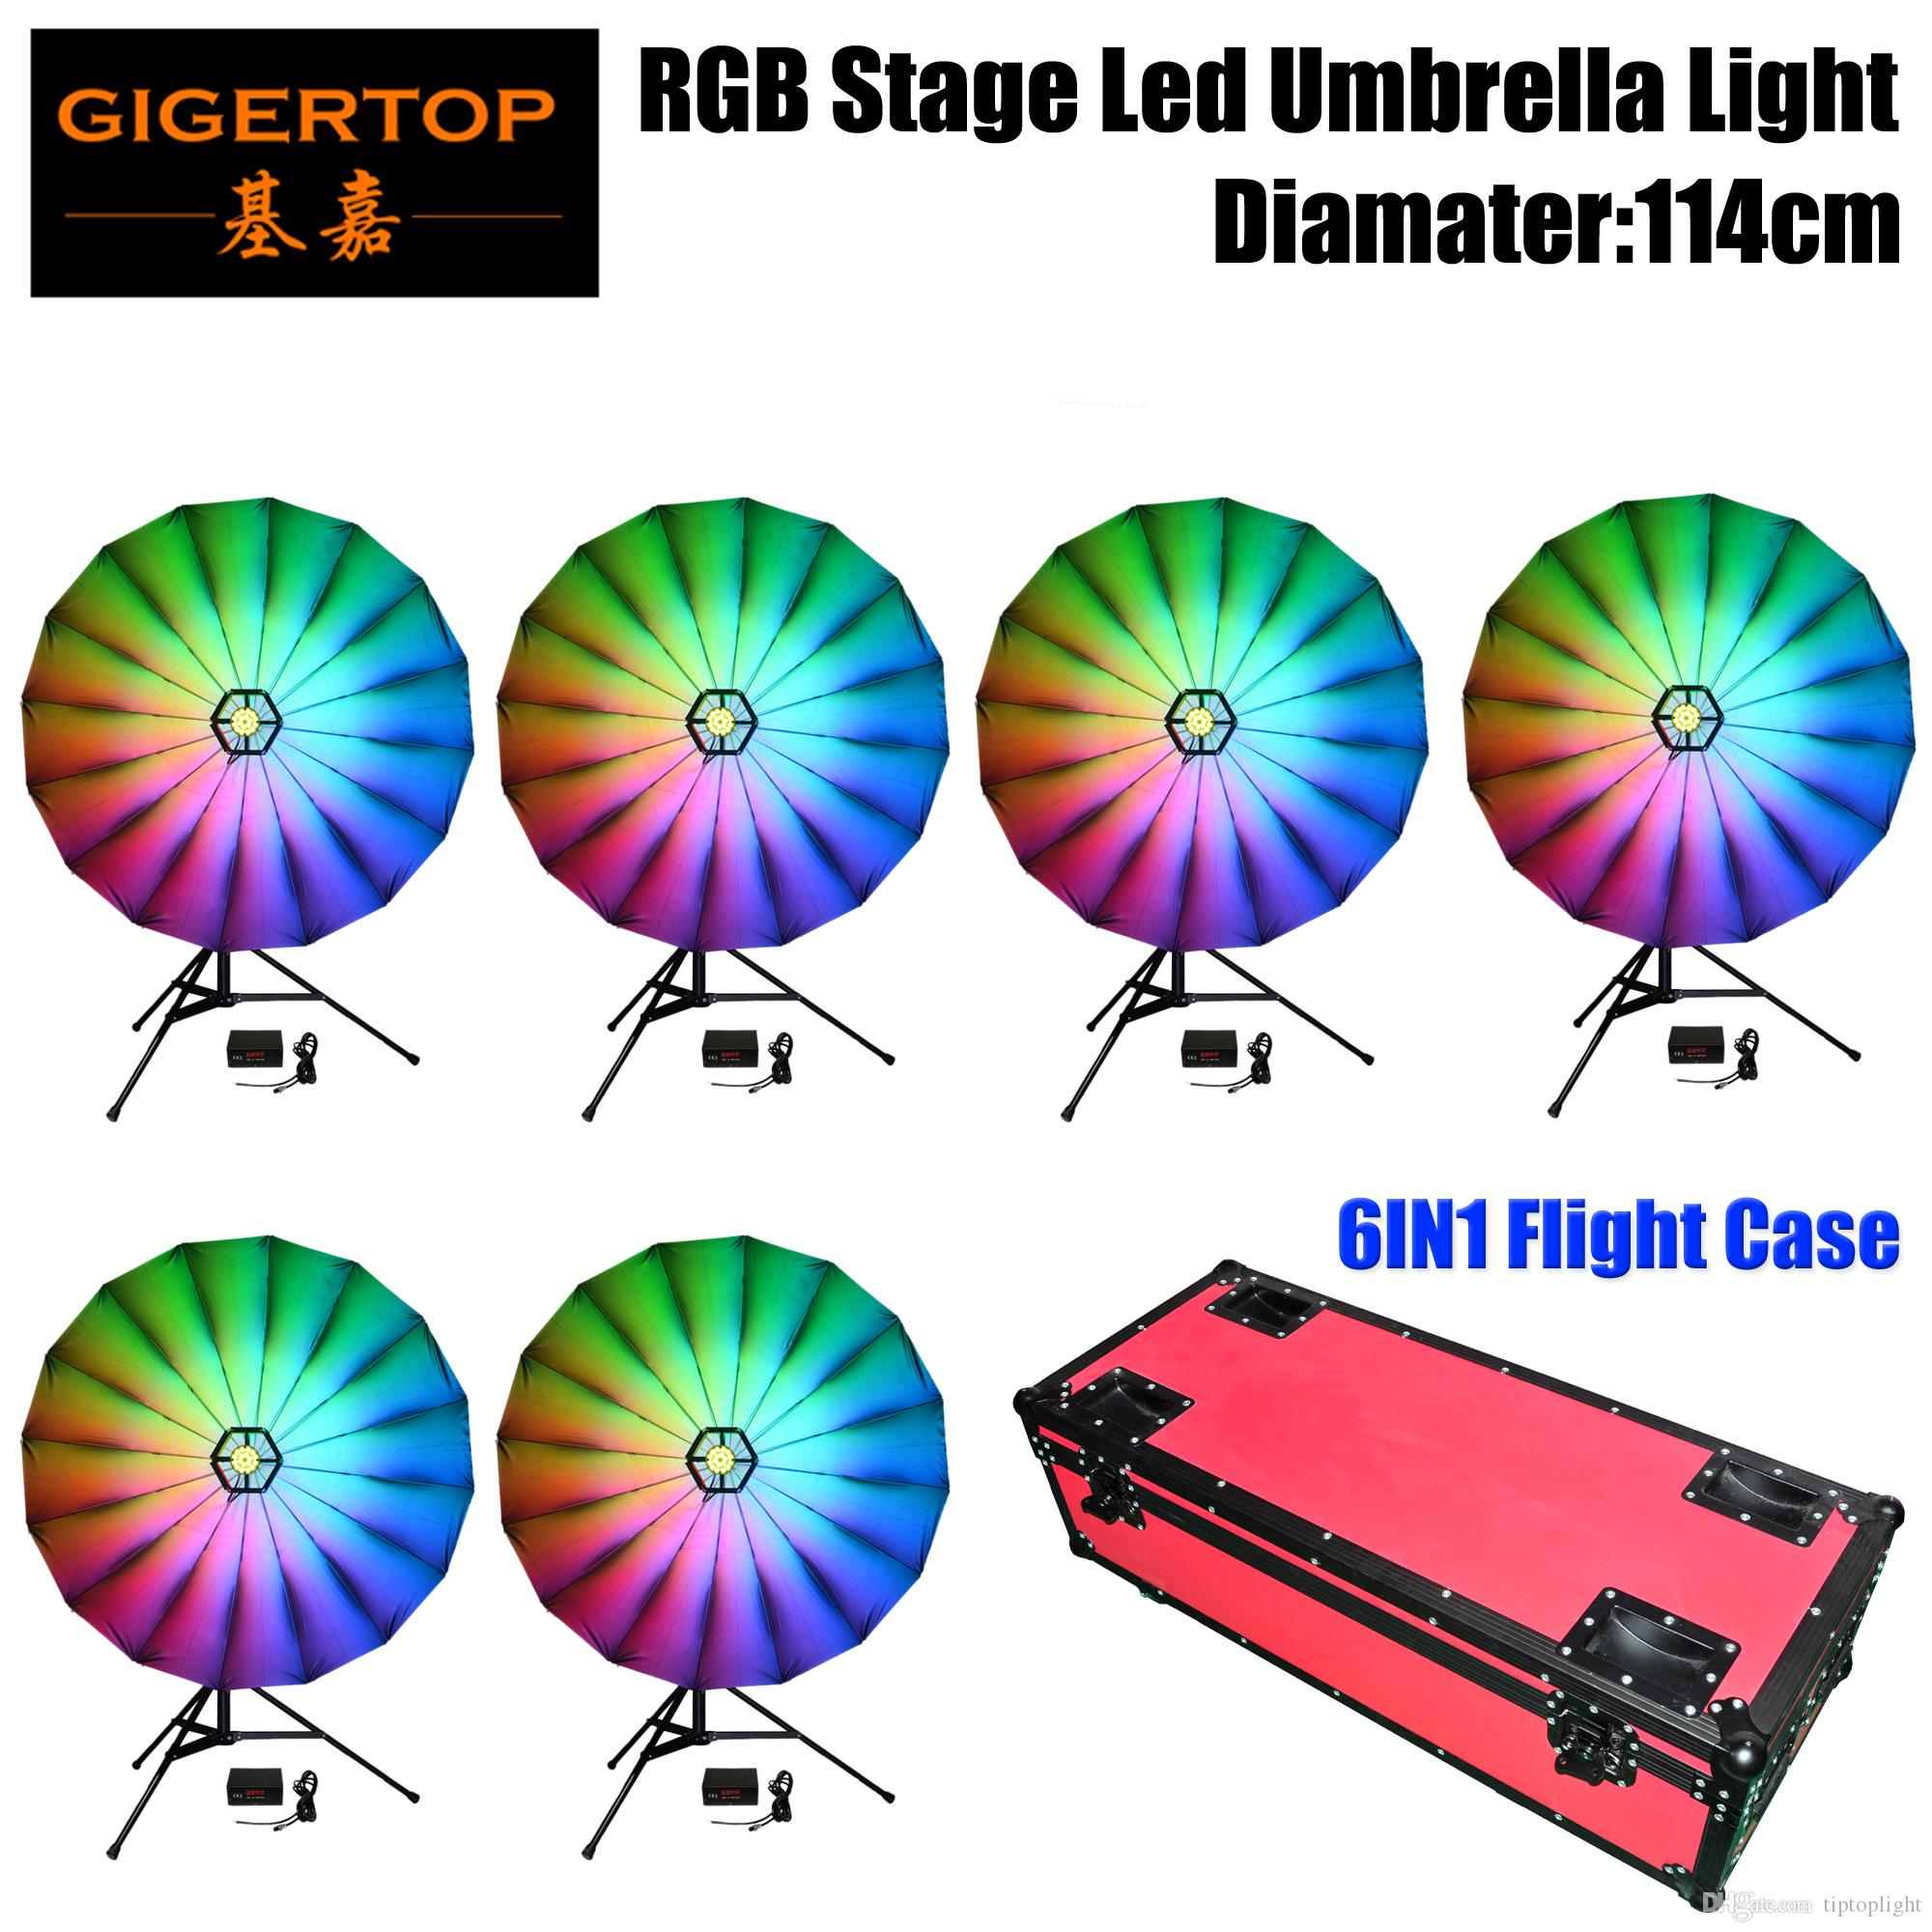 Gigertop TP-UM25 12W RGB Led Umbrella Lighting Silver Color Reflector Surface DMX Controller Box Build In Program Party Wedding